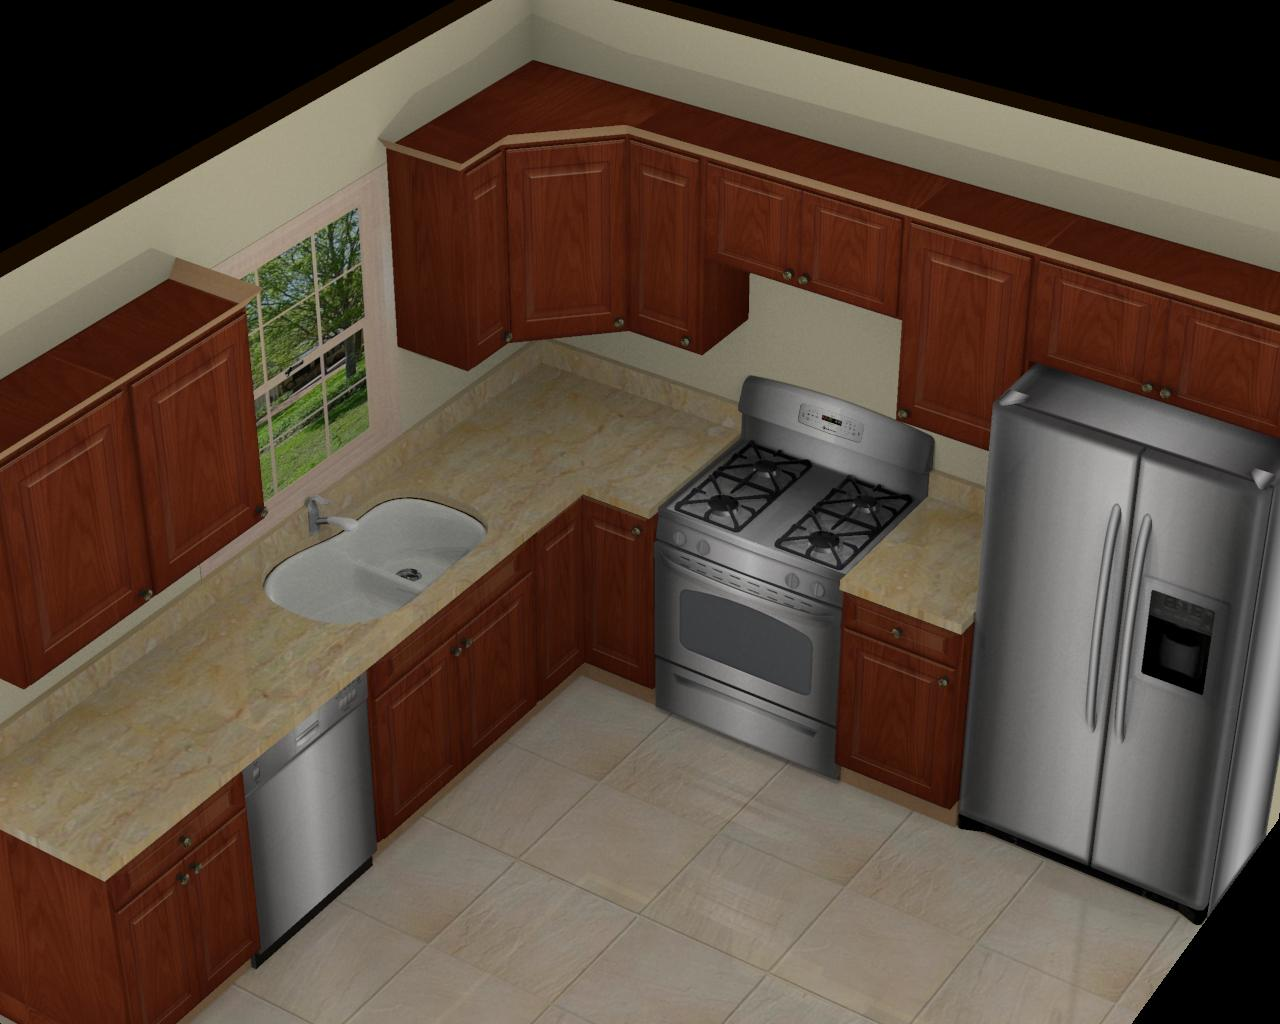 Foundation dezin decor 3d kitchen model design for Kitchen ideas 10 x 12